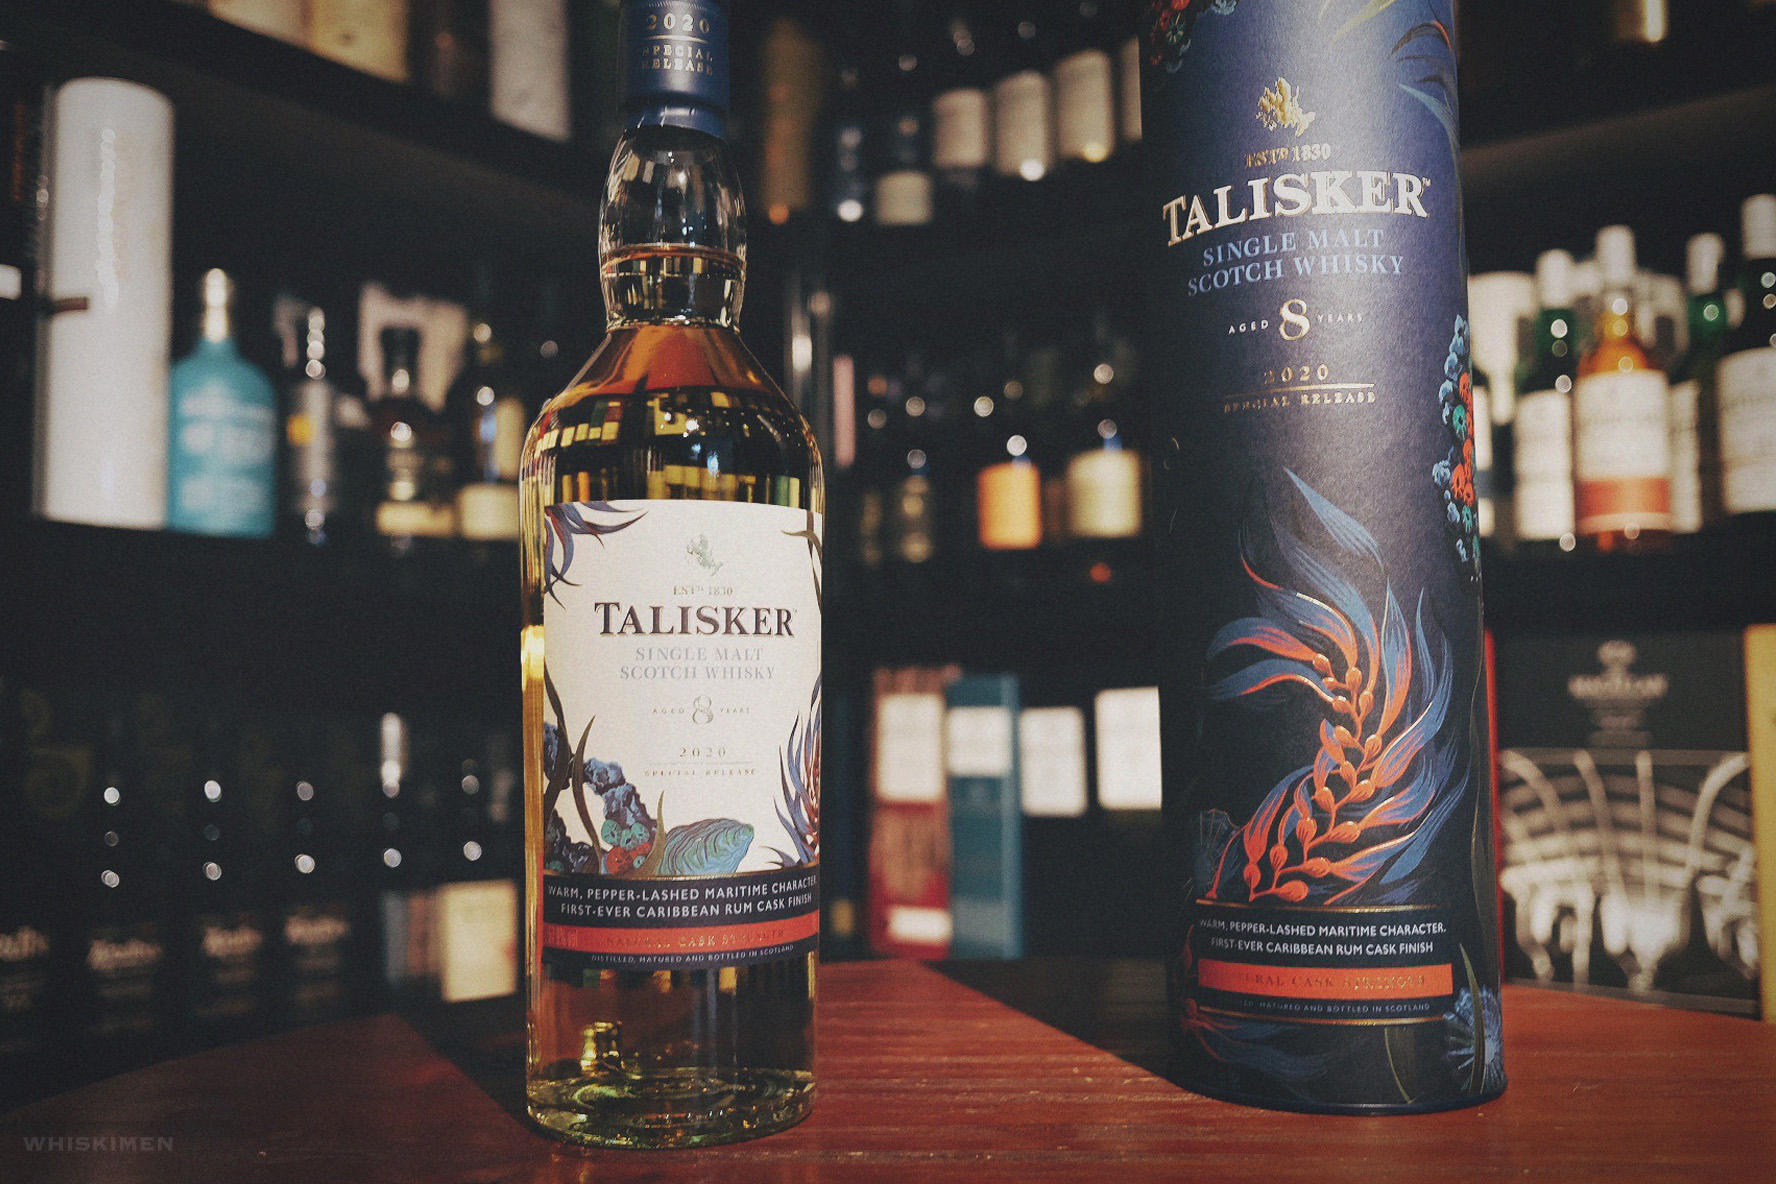 Talisker 8 Year Old Natural Cask Strength Single Malt Scotch Whisky (2020 Special Release)